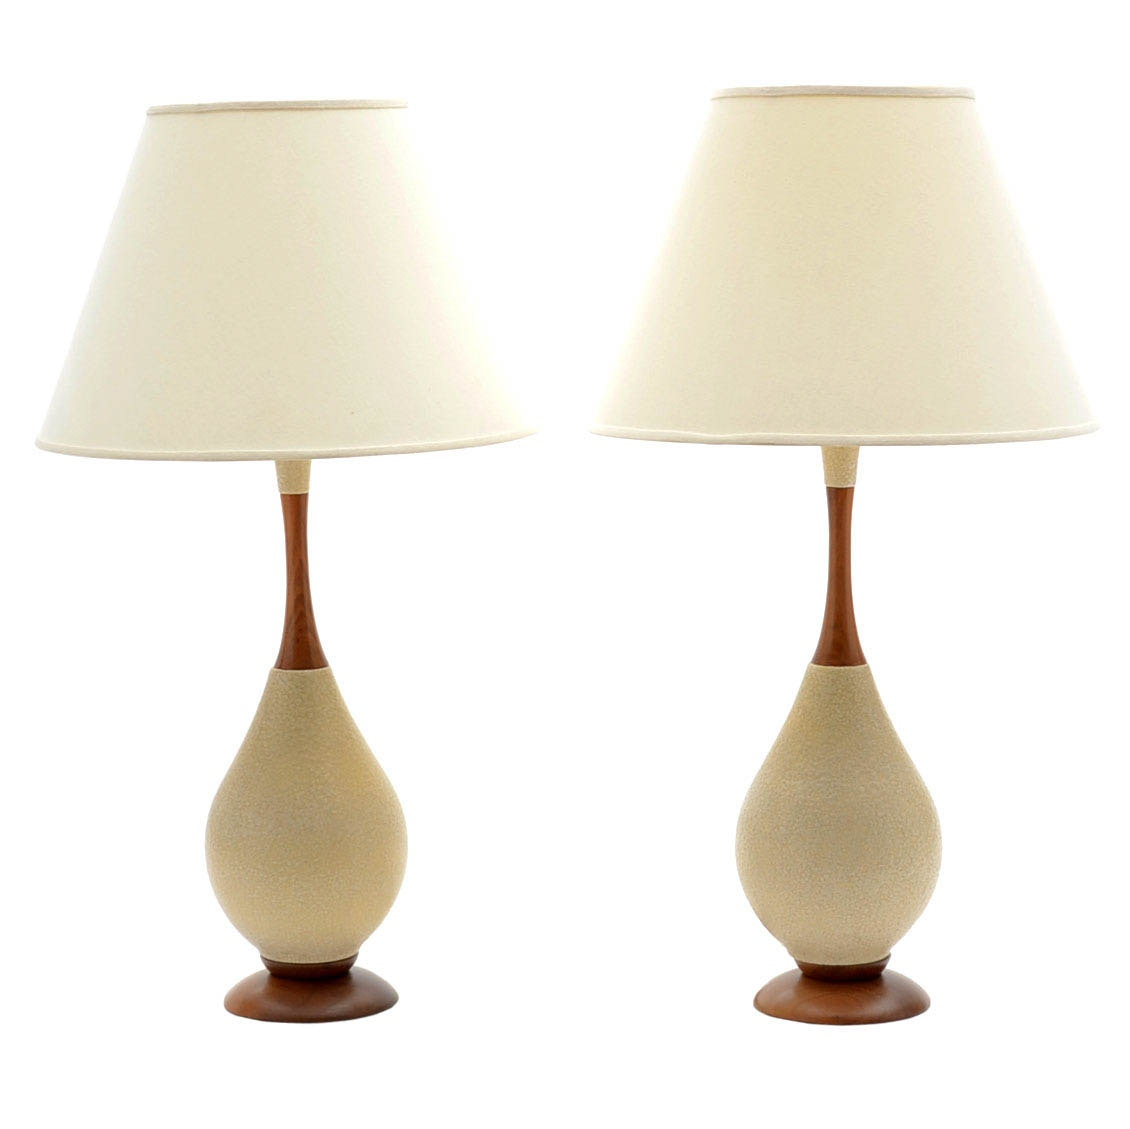 Pair of Mid Century Modern Ceramic and Wood Table Lamps